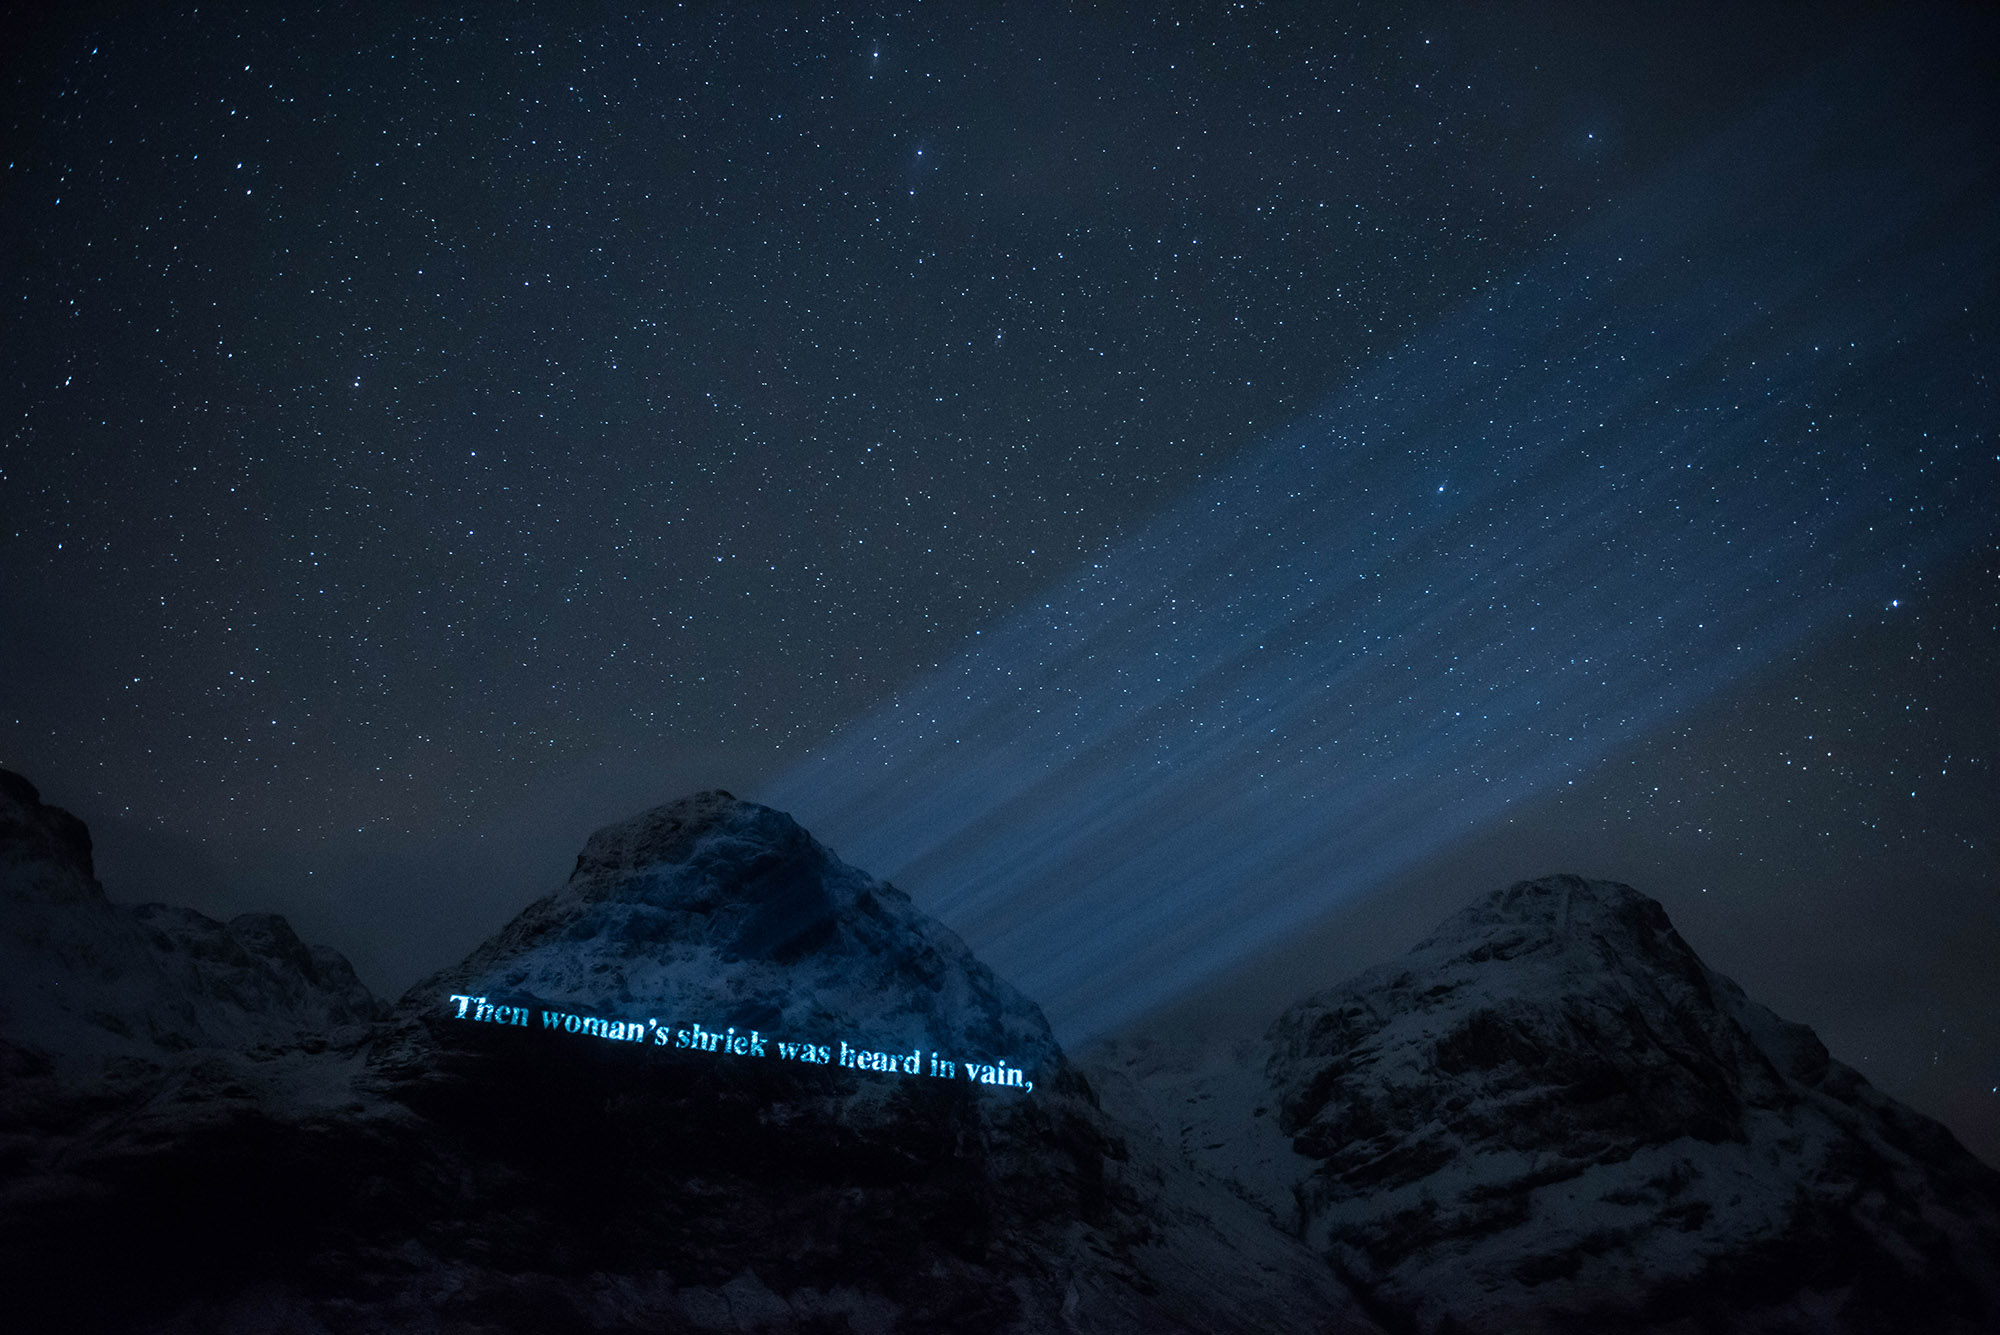 On The Massacre of Glencoe, Projection timelapse film, mountain